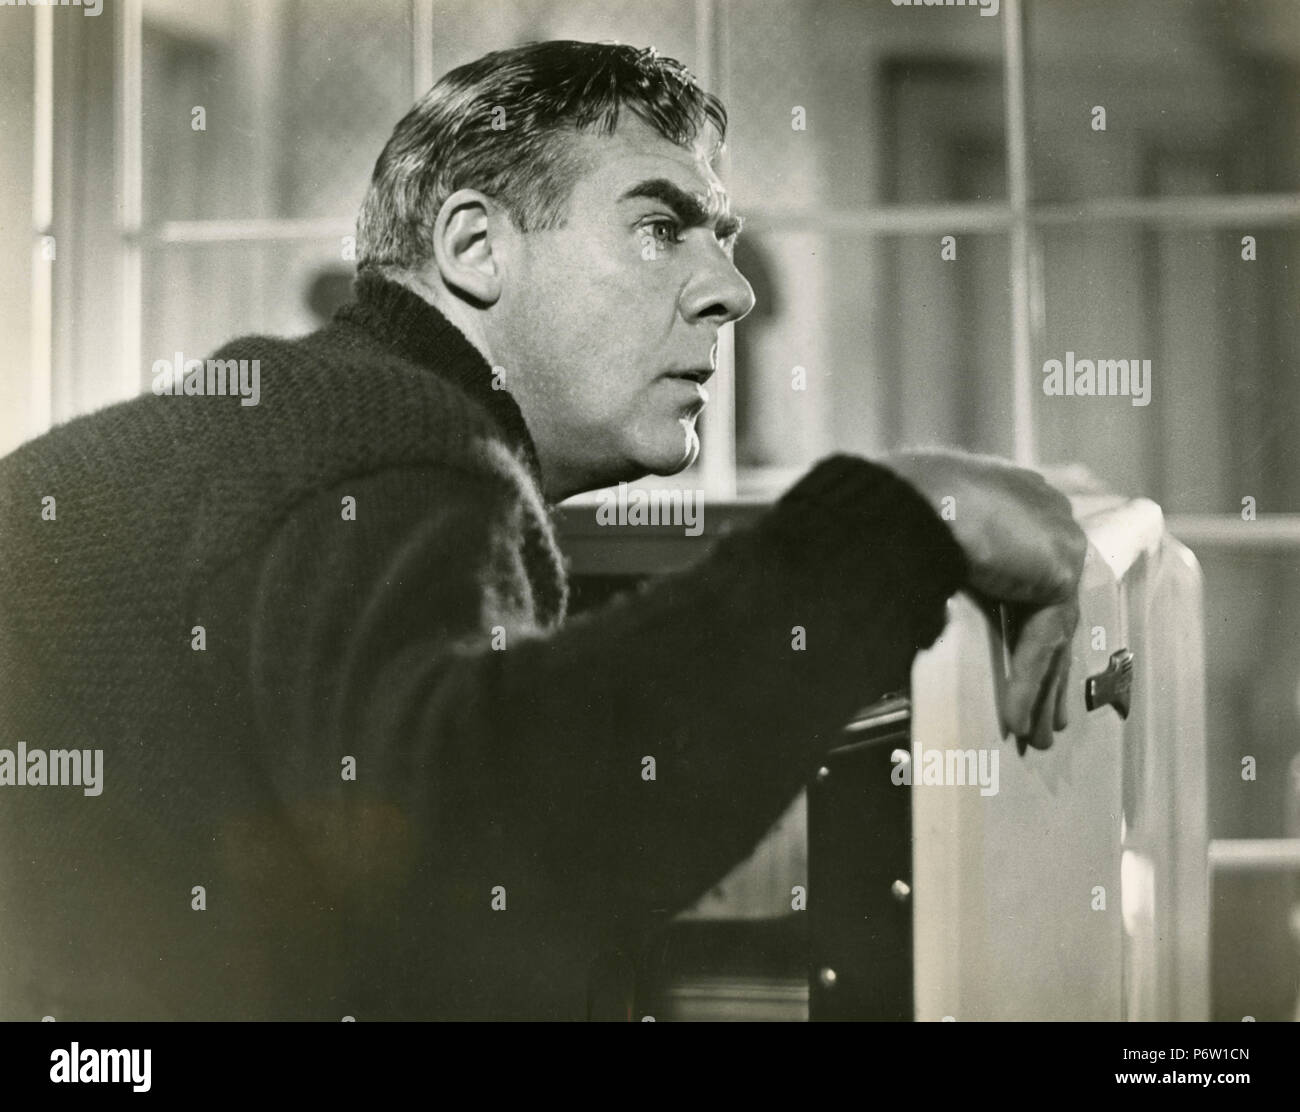 Actor Paul Douglas in the movie Clash By Night, 1952 - Stock Image